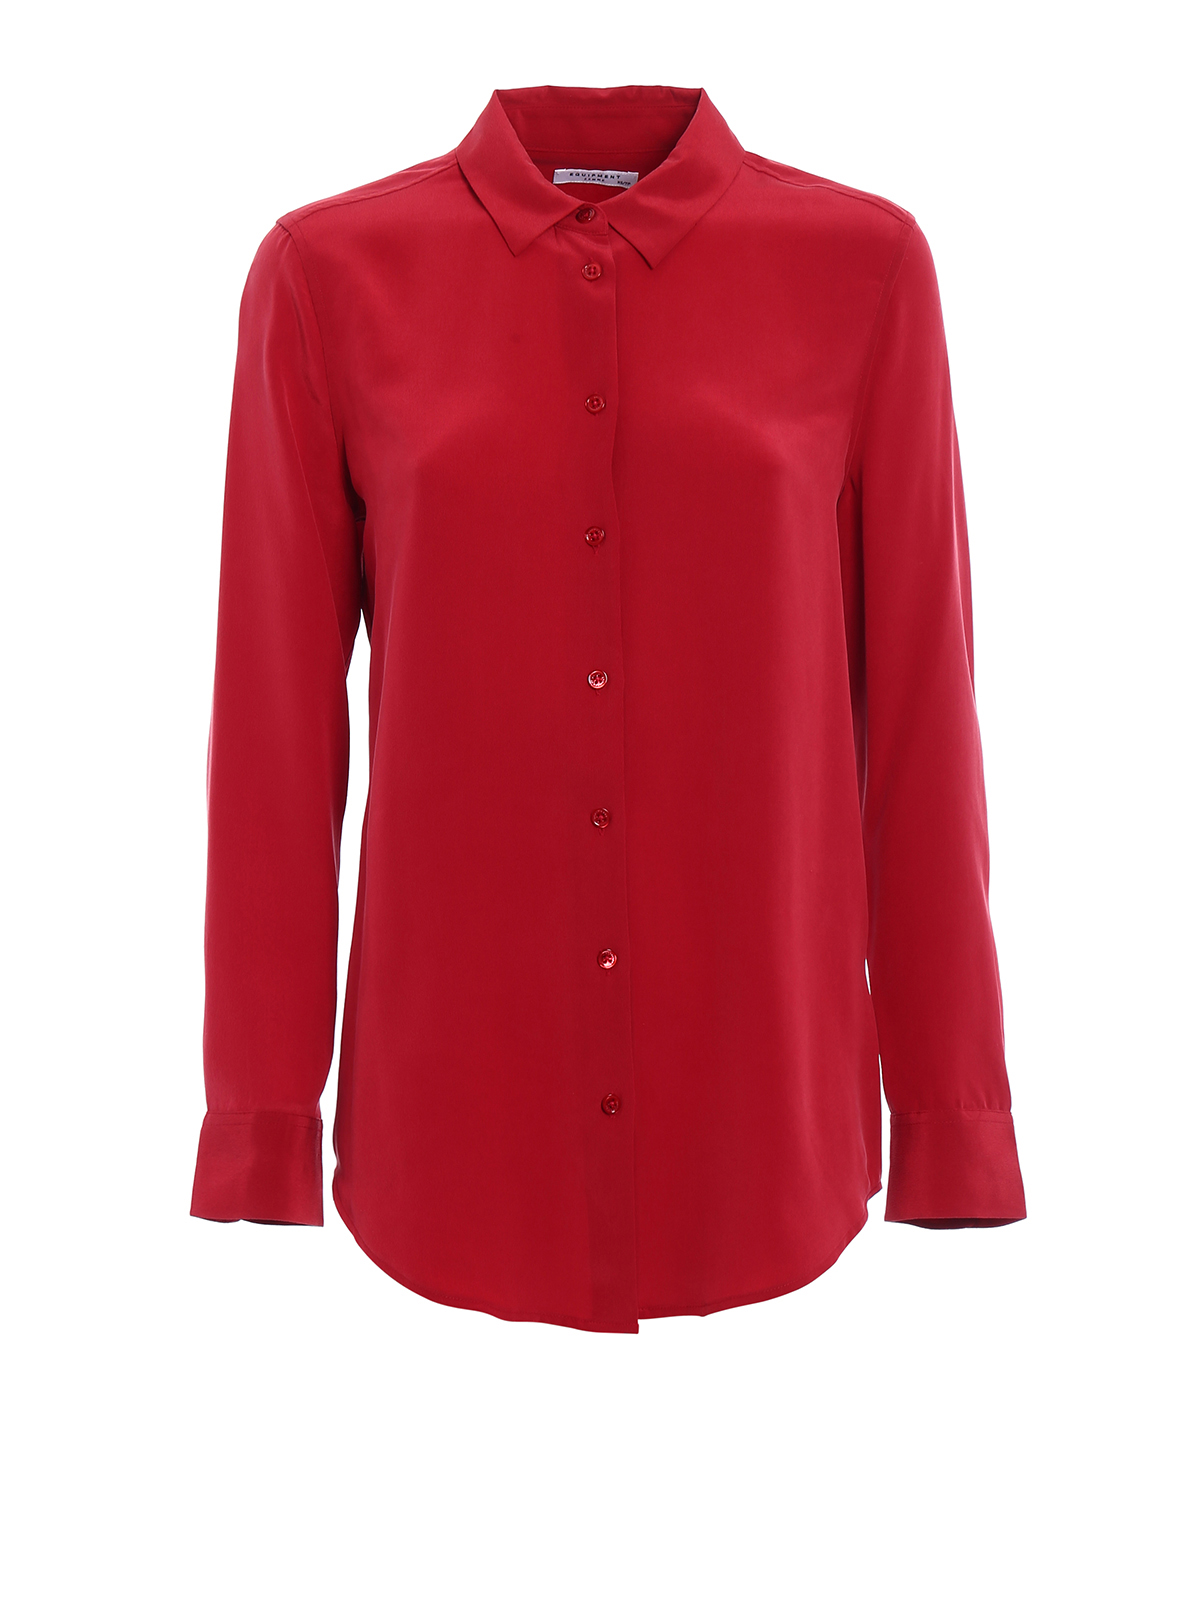 huge selection of 35a13 bfb56 Equipment - Camicia Essential in seta rossa - camicie - Q23 ...